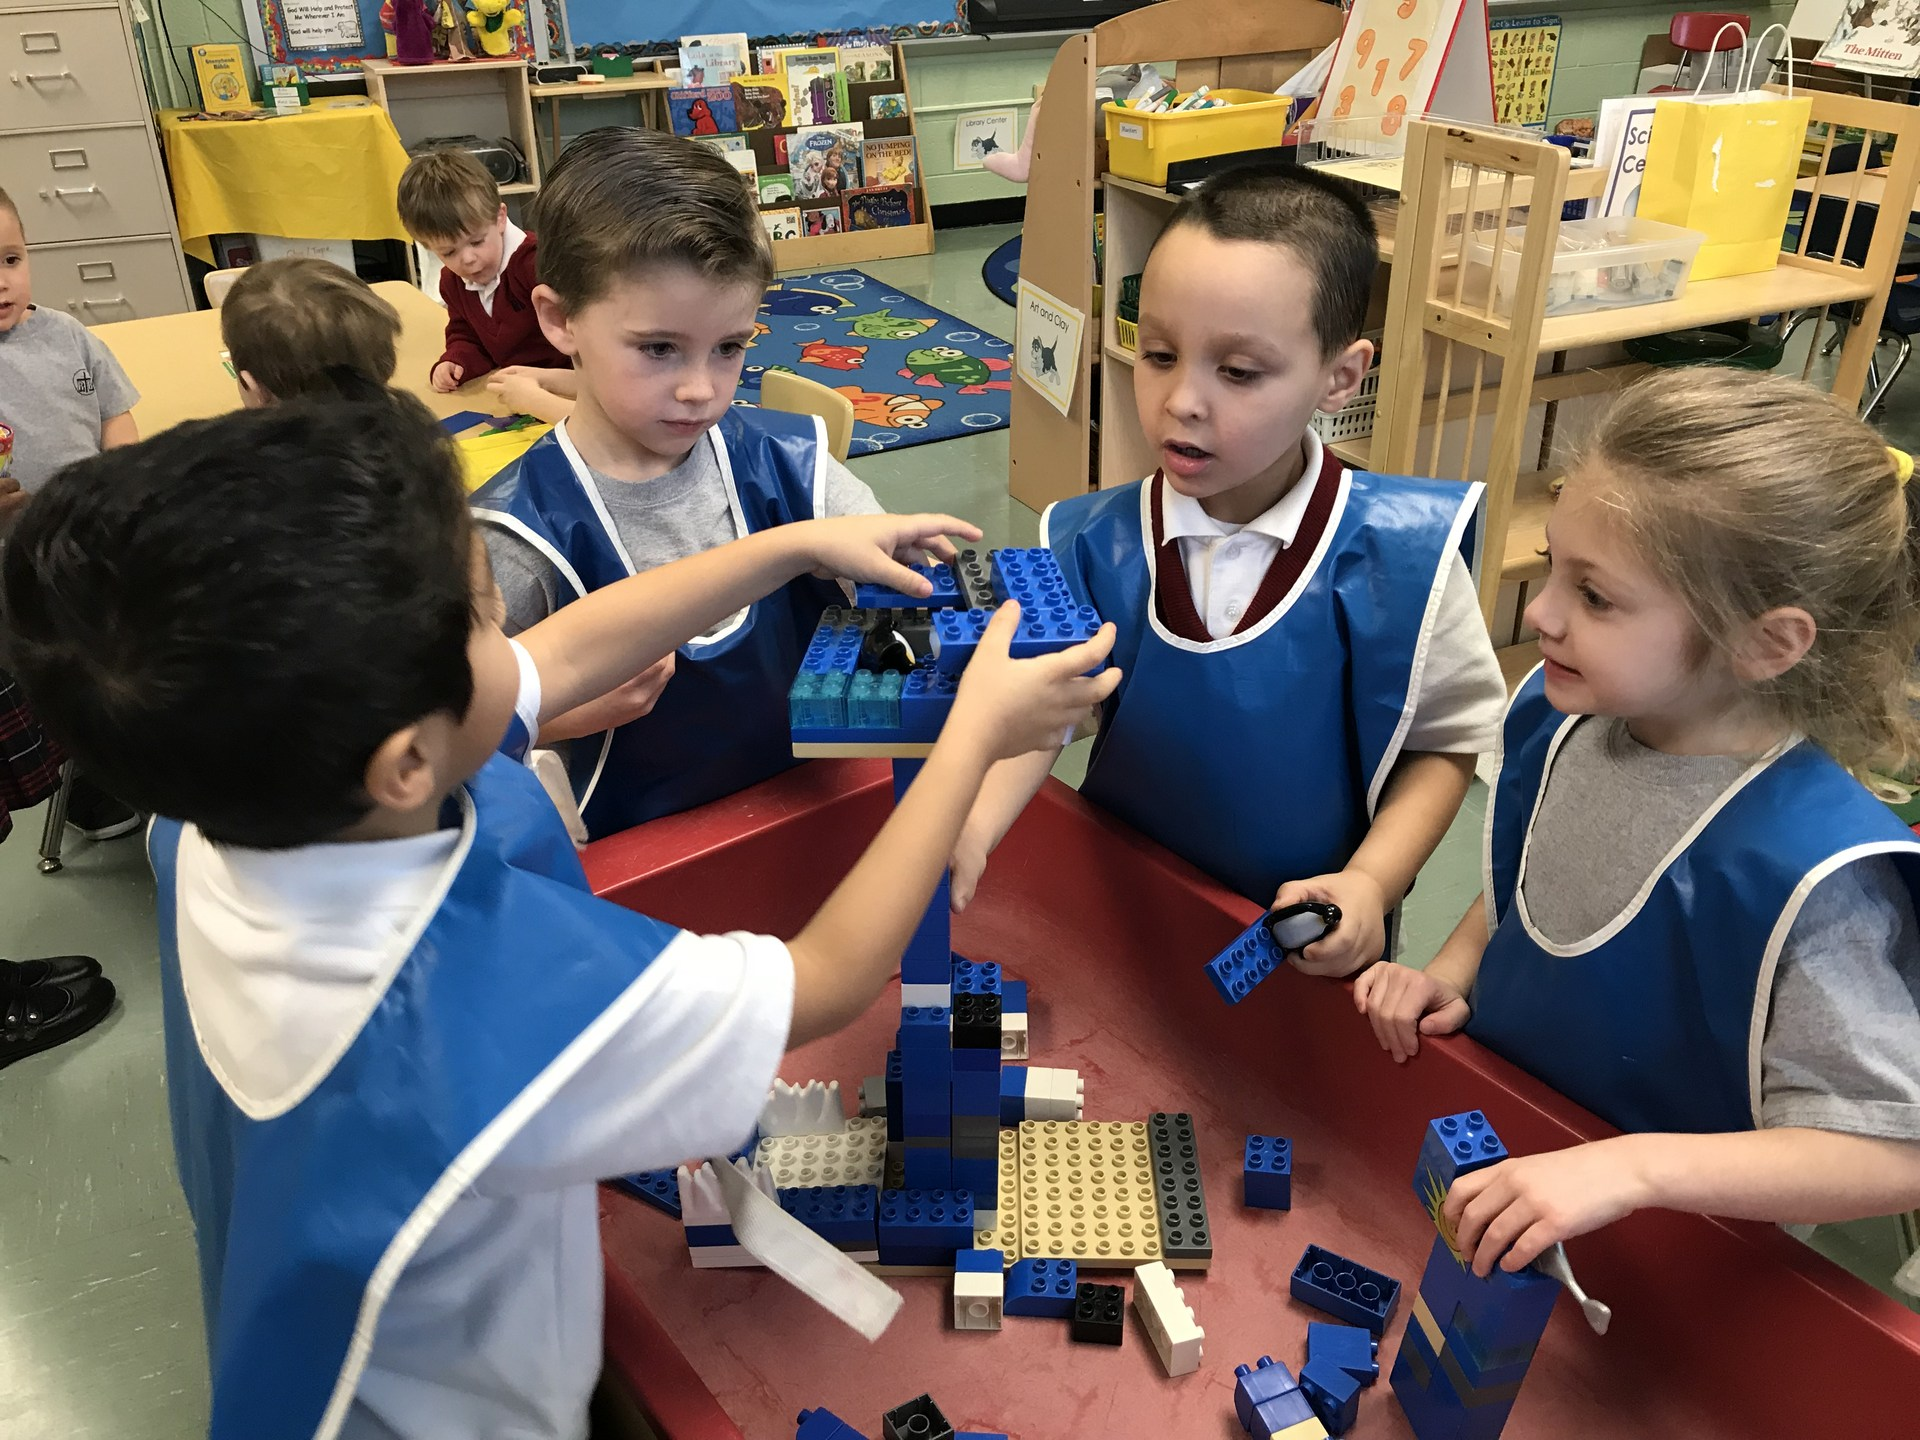 Students building a ship with legos